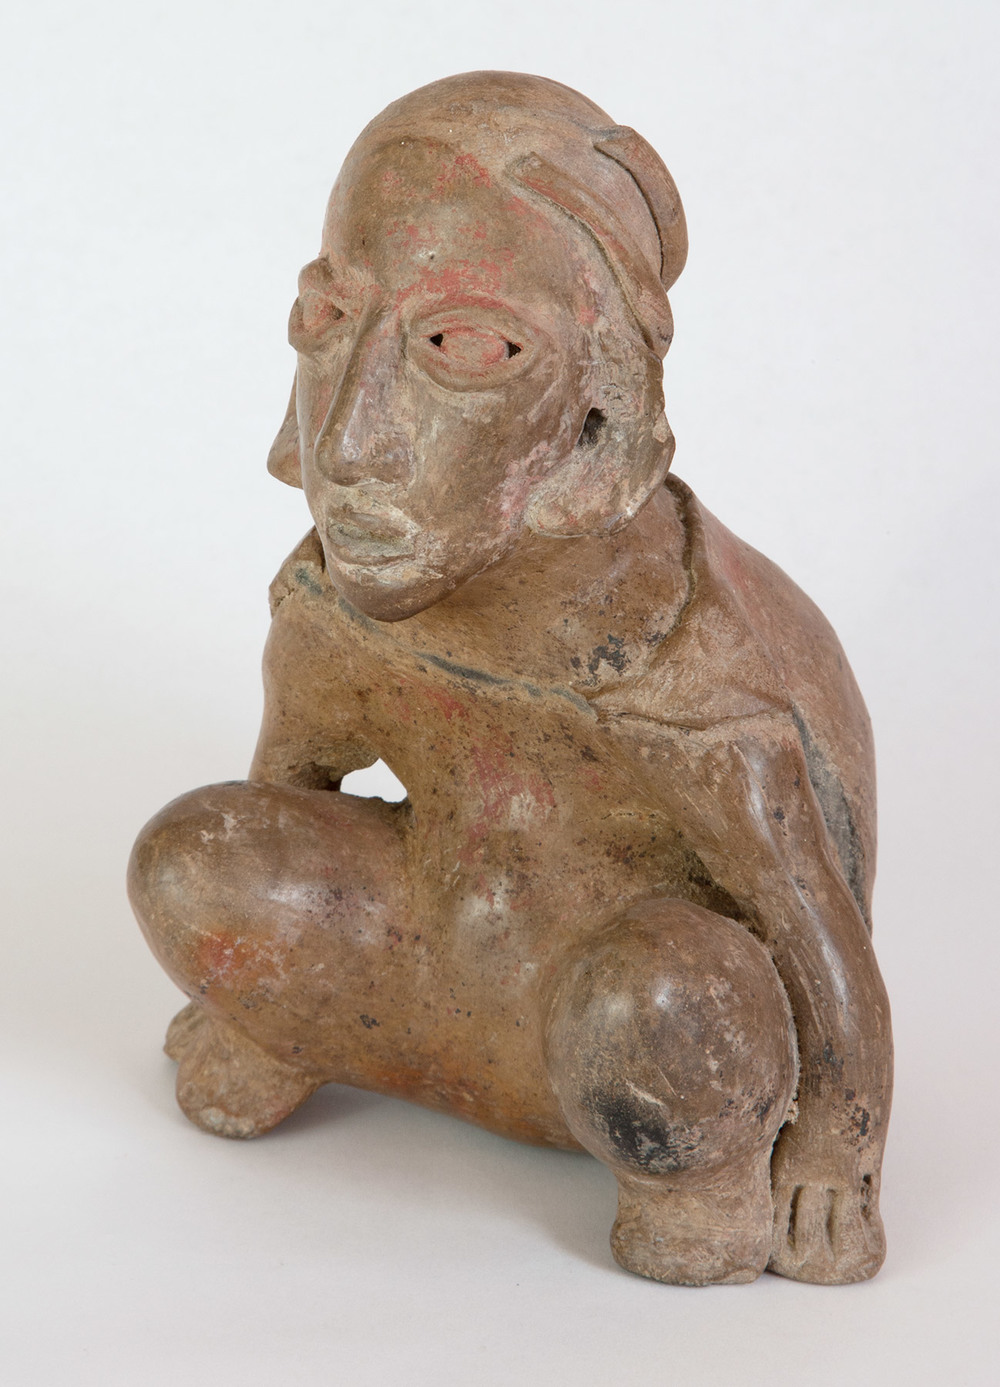 "Jalisco buff terracotta figure representing a crouching dwarf 200 BC-200 AD 7-1/2"" high"